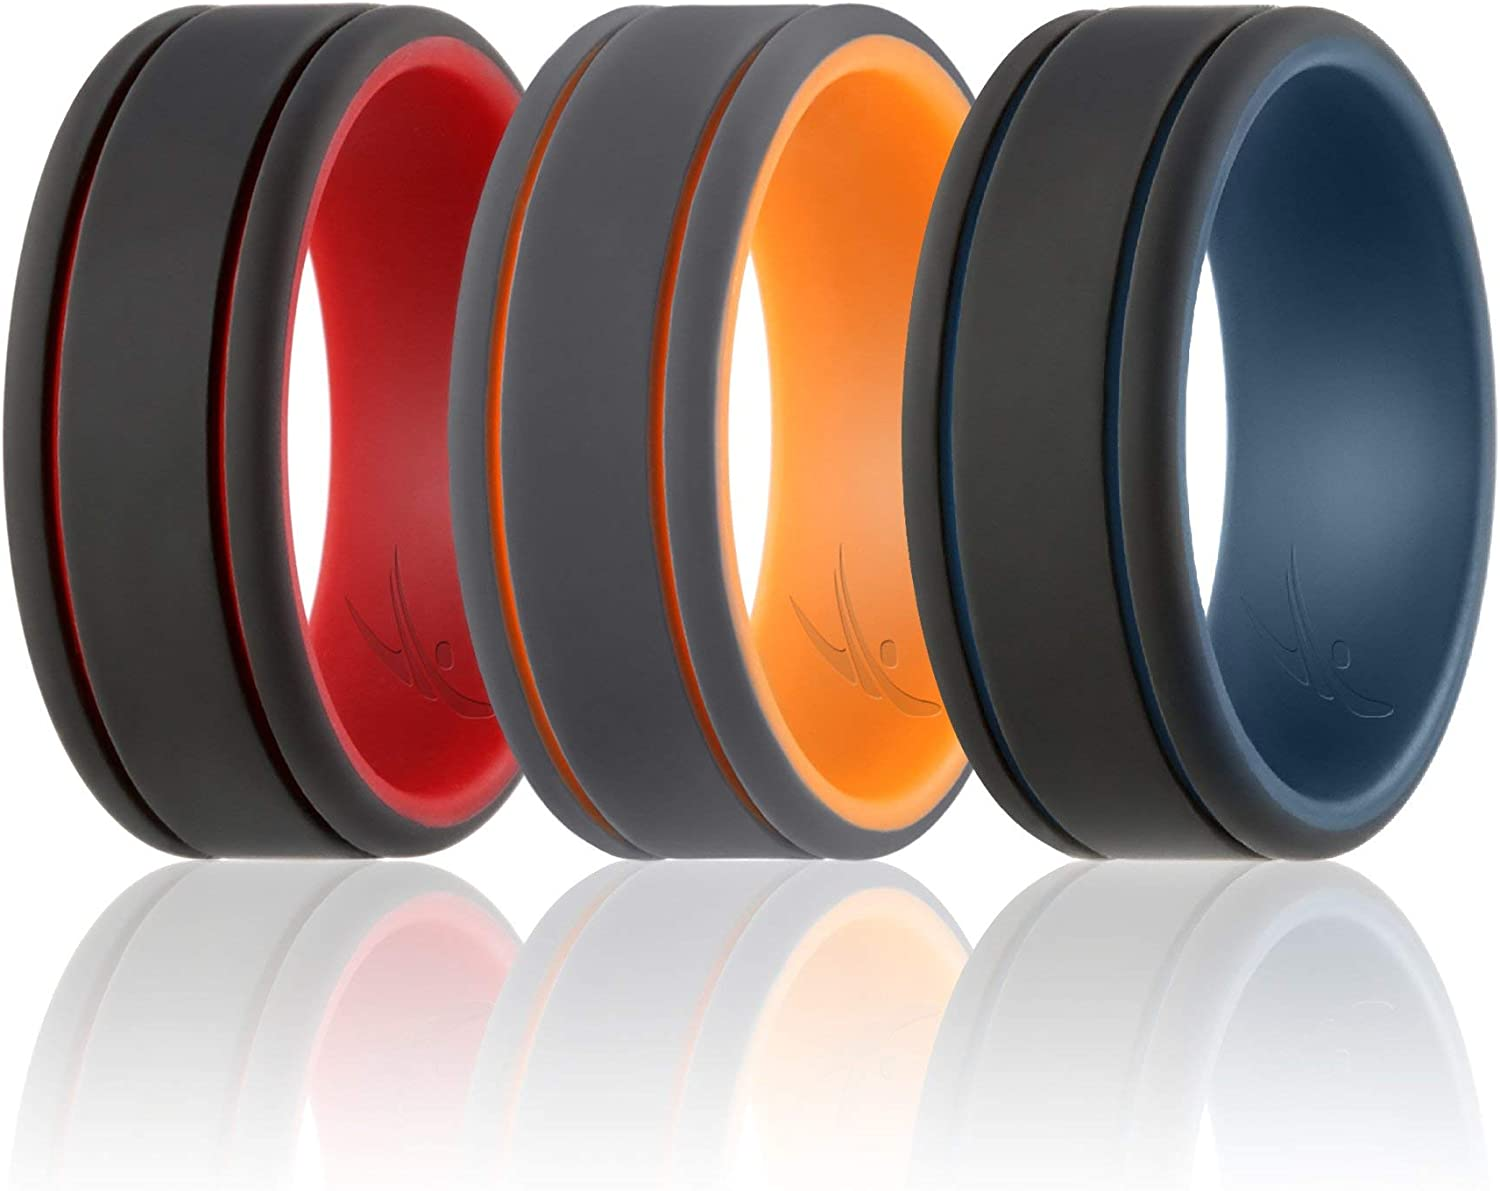 Classic Style Silicone Rubber Wedding Bands Duo Collection ROQ Silicone Wedding Ring for Men